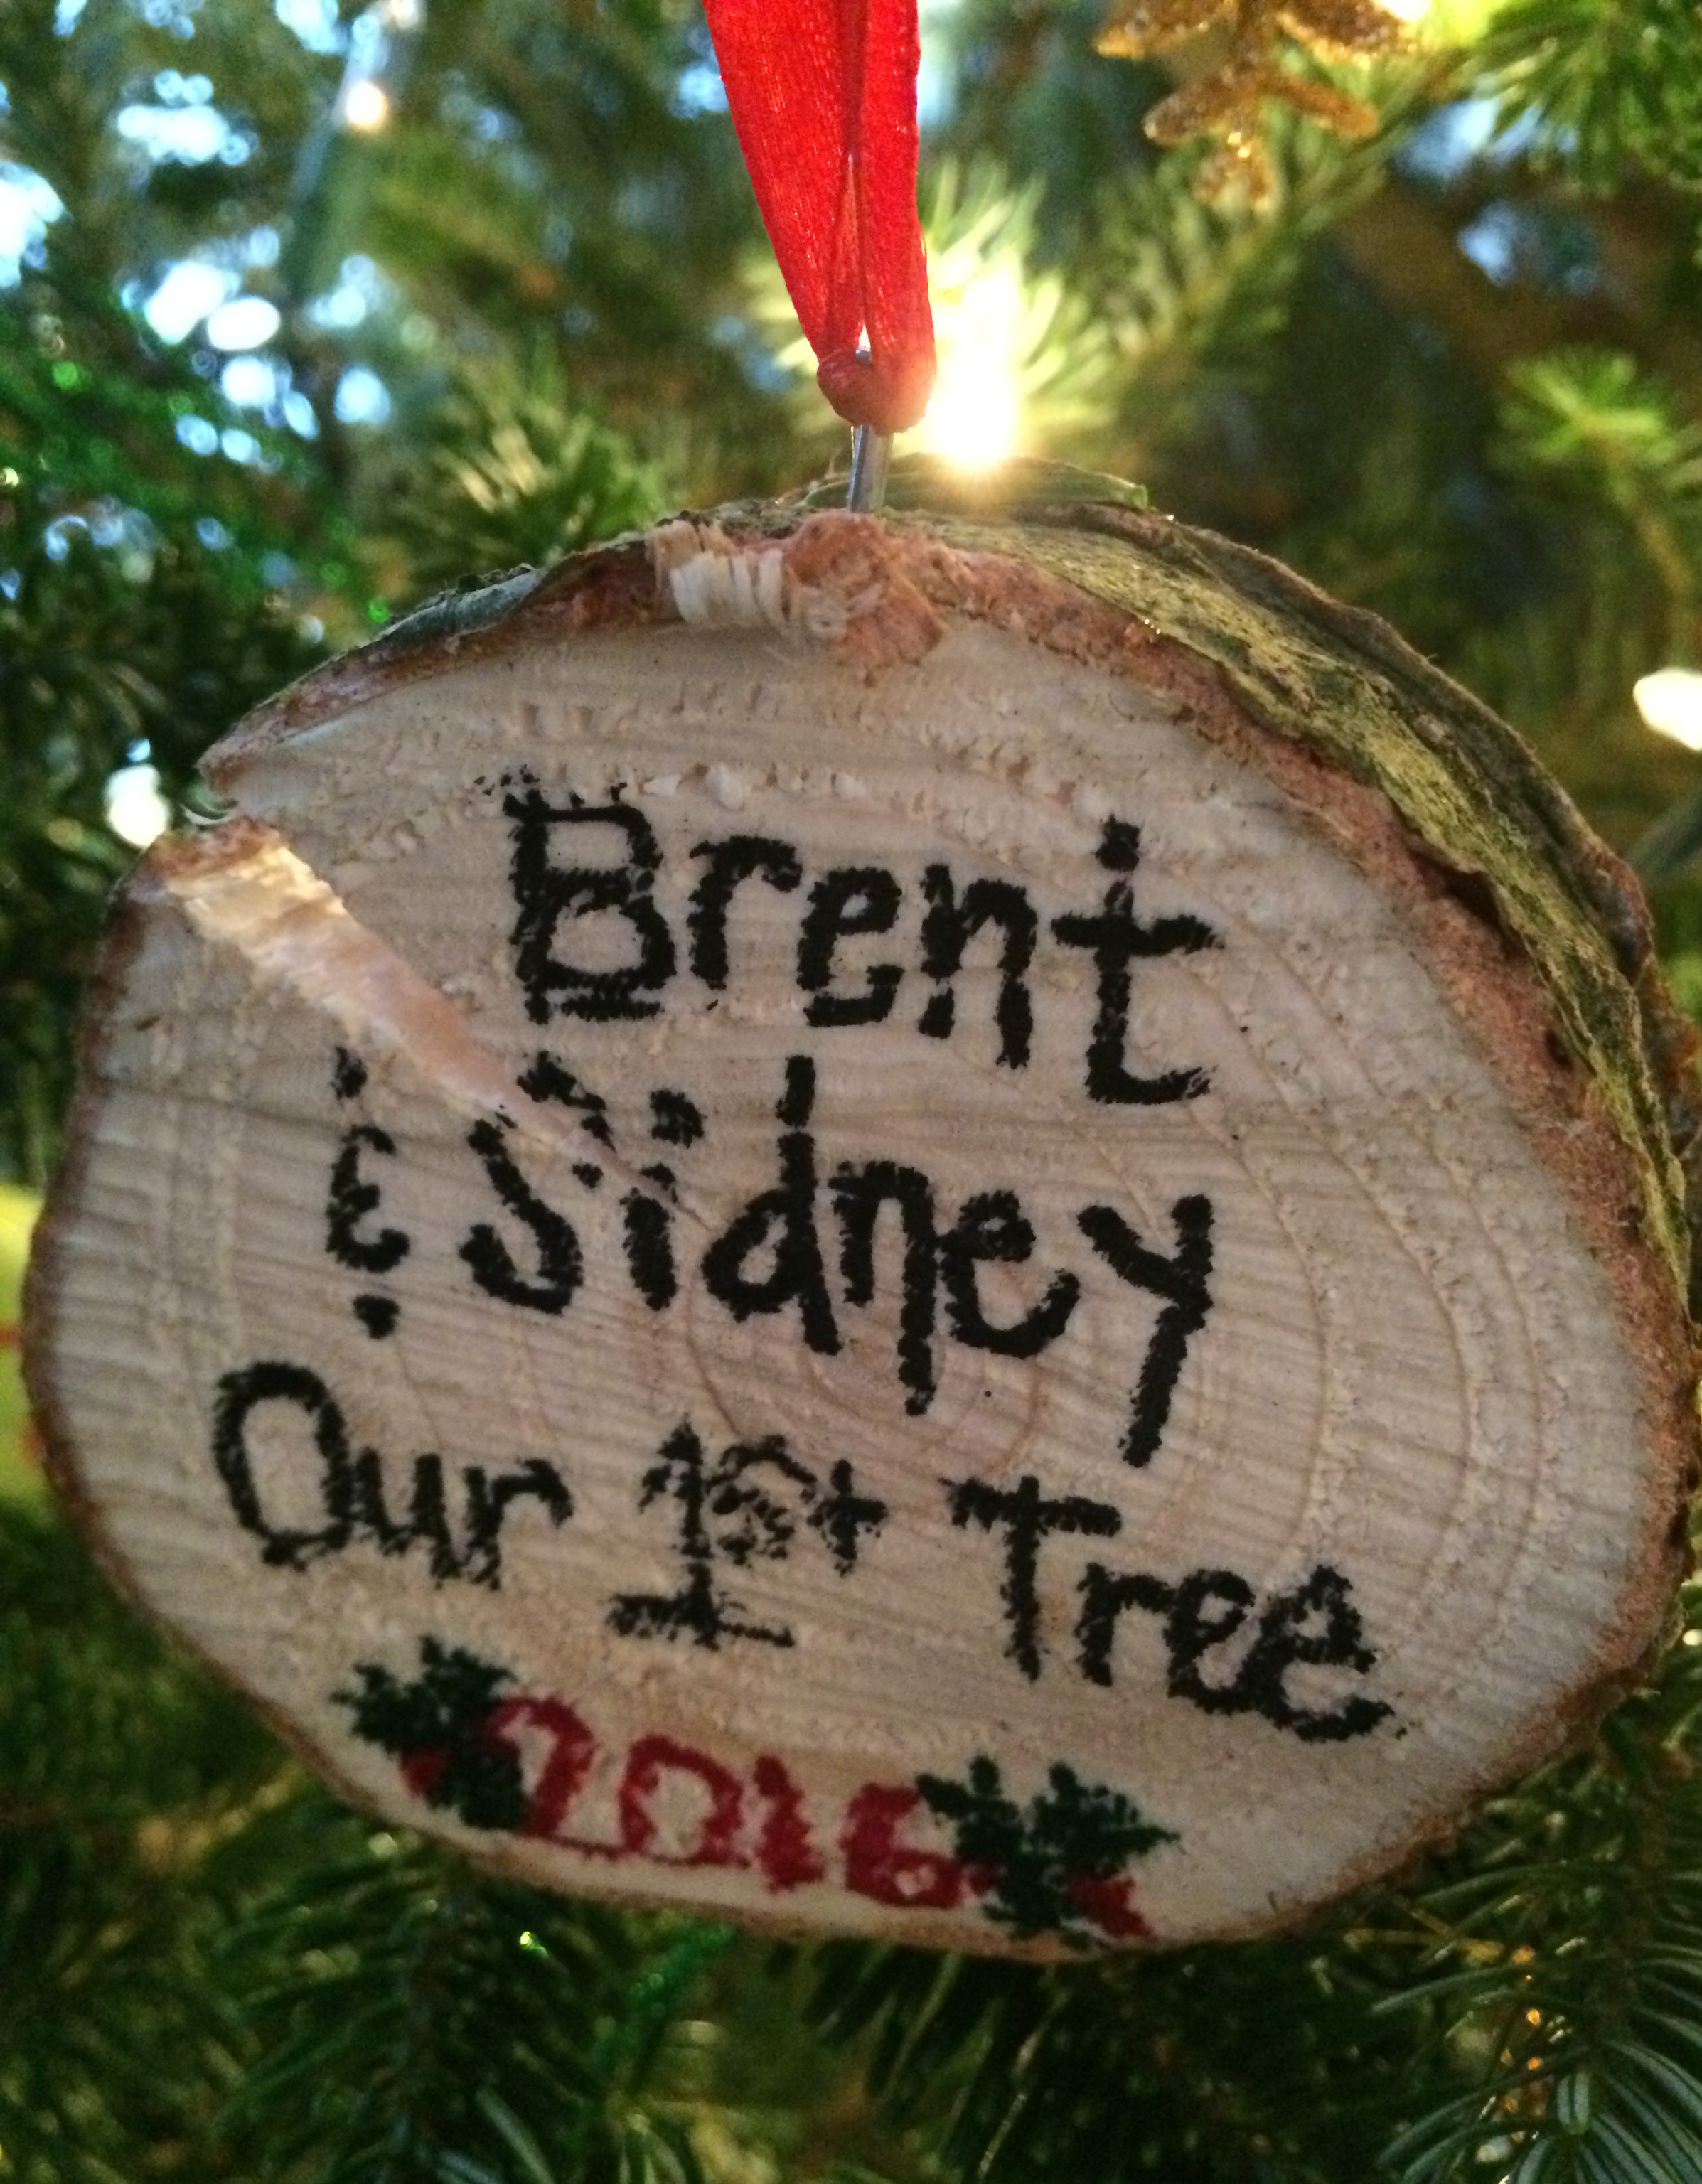 This was a brilliant idea by Sid to make this ornament using the stump of our tree.